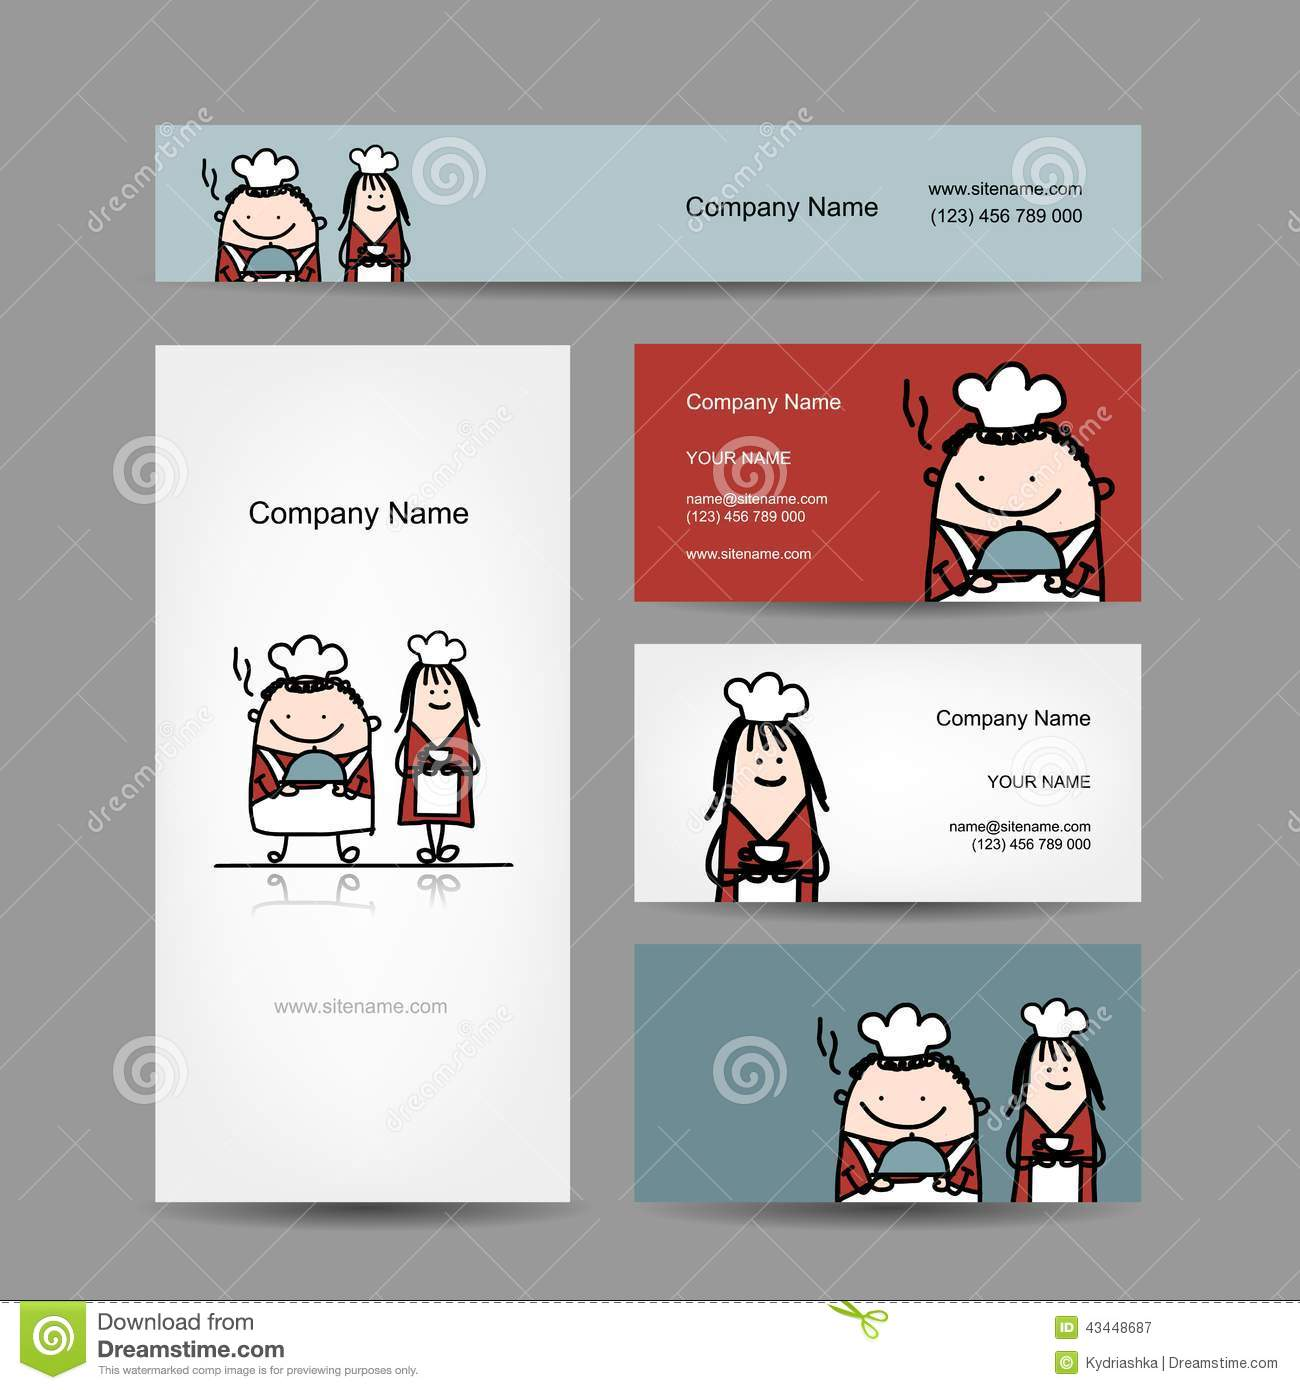 Design Of Business Cards With Chef Cook Cartoon Stock Vector ...